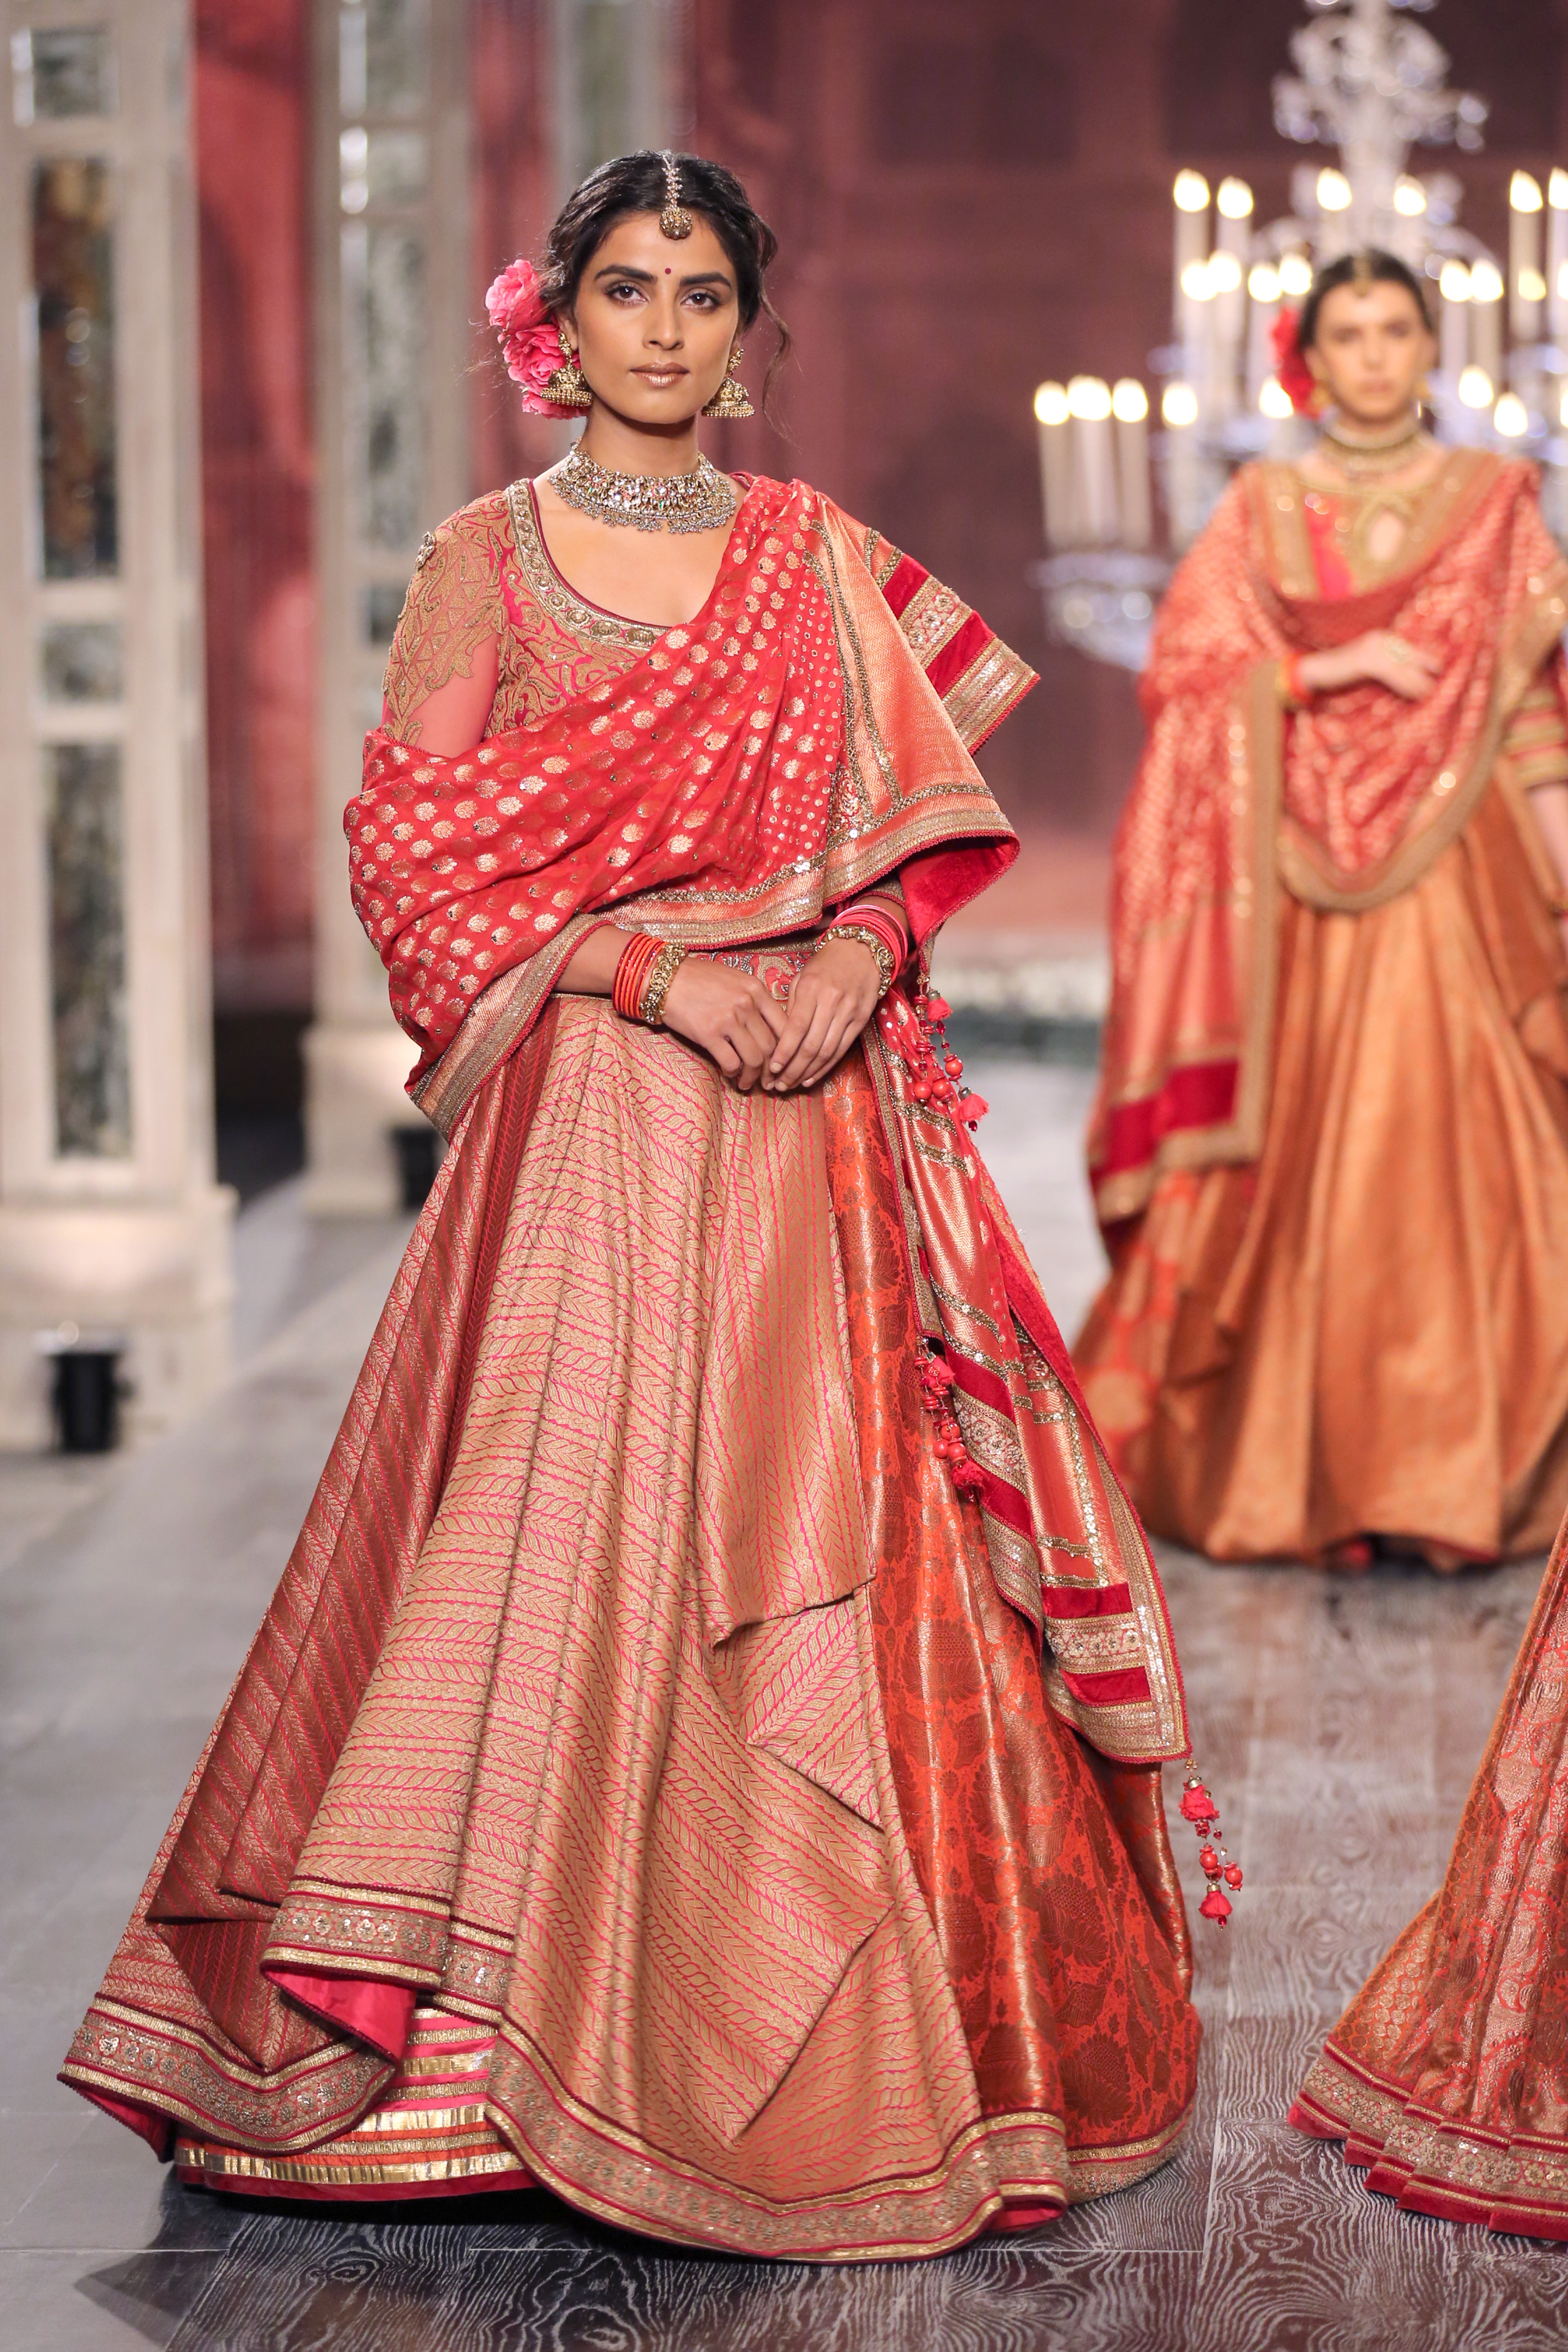 Tarun Tahiliani 'The last dance of the courtesans' showcased at FDCI India Couture Week 2016